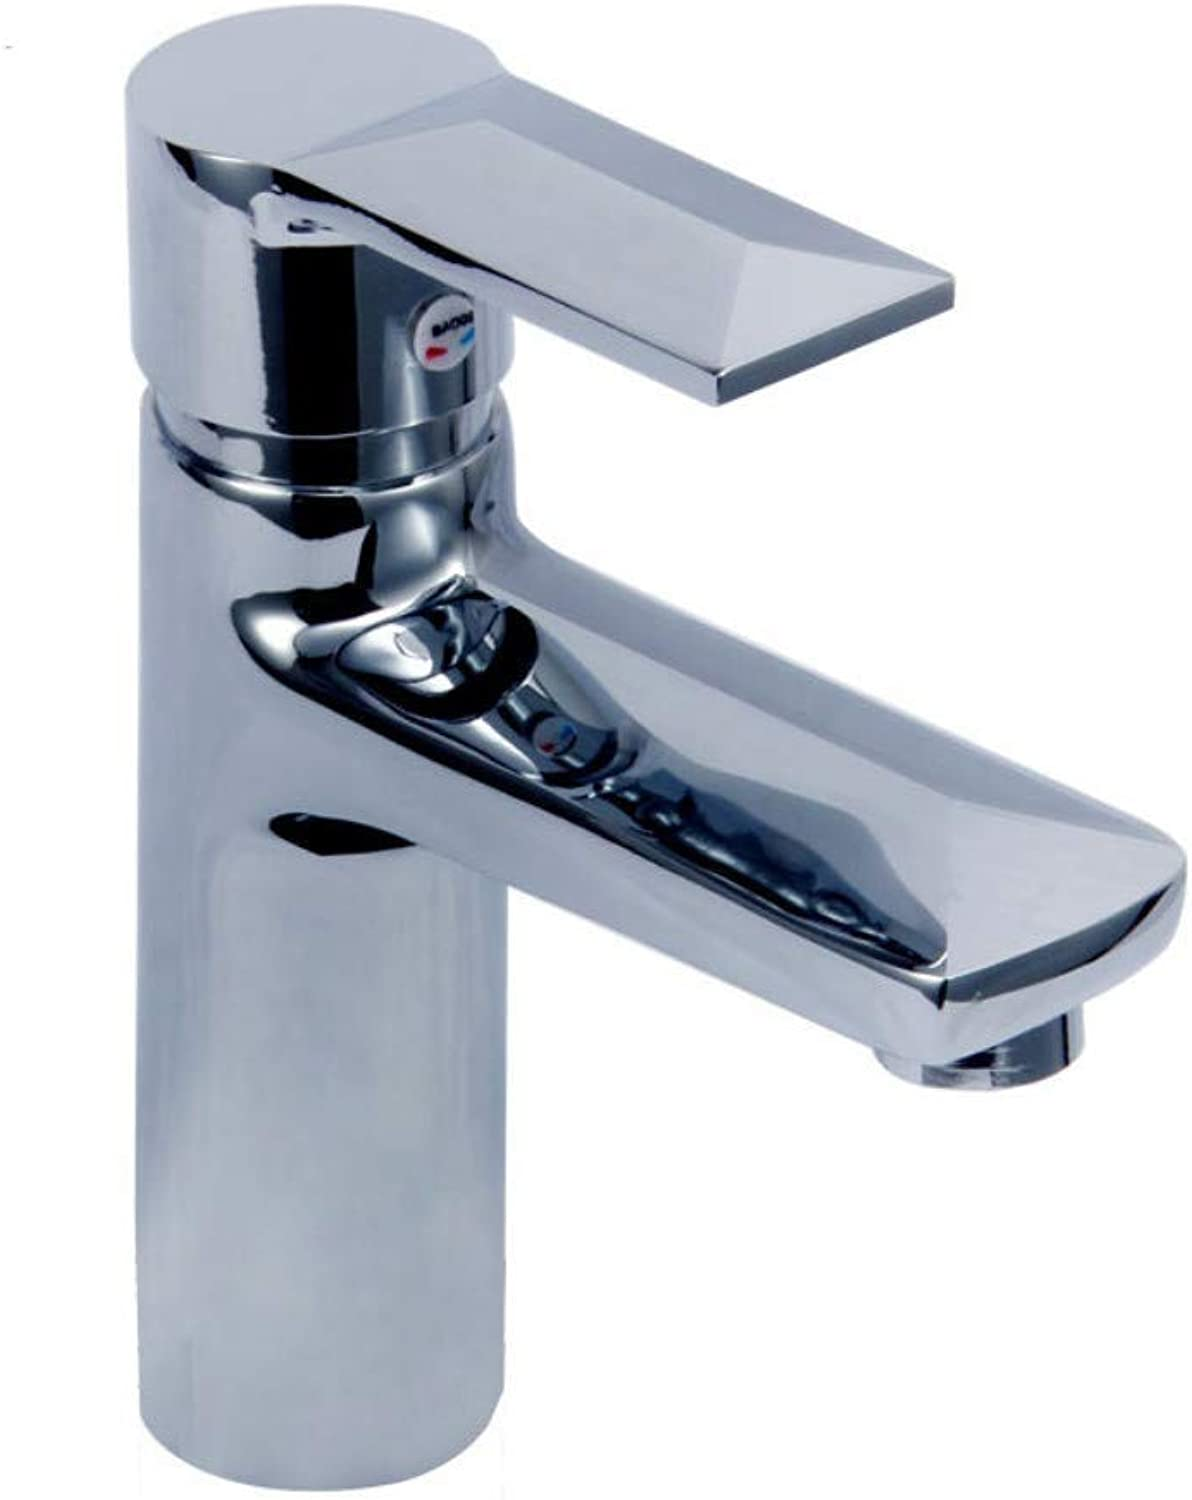 Water Tap Single Handle Taps Basin Copper Single Hole Hot and Cold Faucet Washbasin Bathroom Plus Re-Diamond Mixing Valve Single Hole Faucet